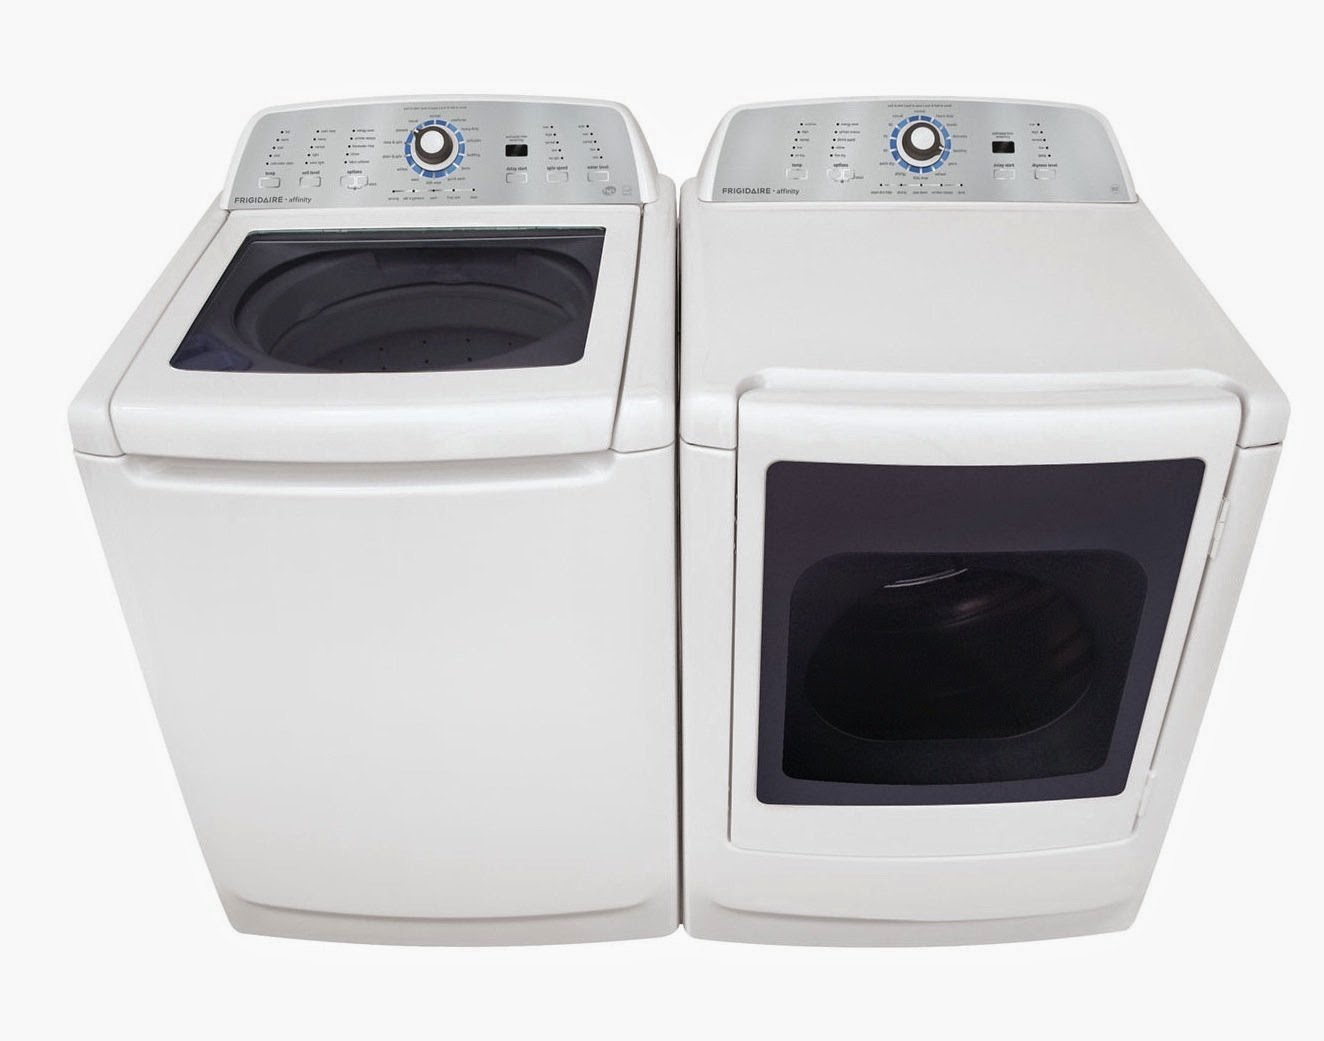 Frigidaire Washer And Dryer Reviews